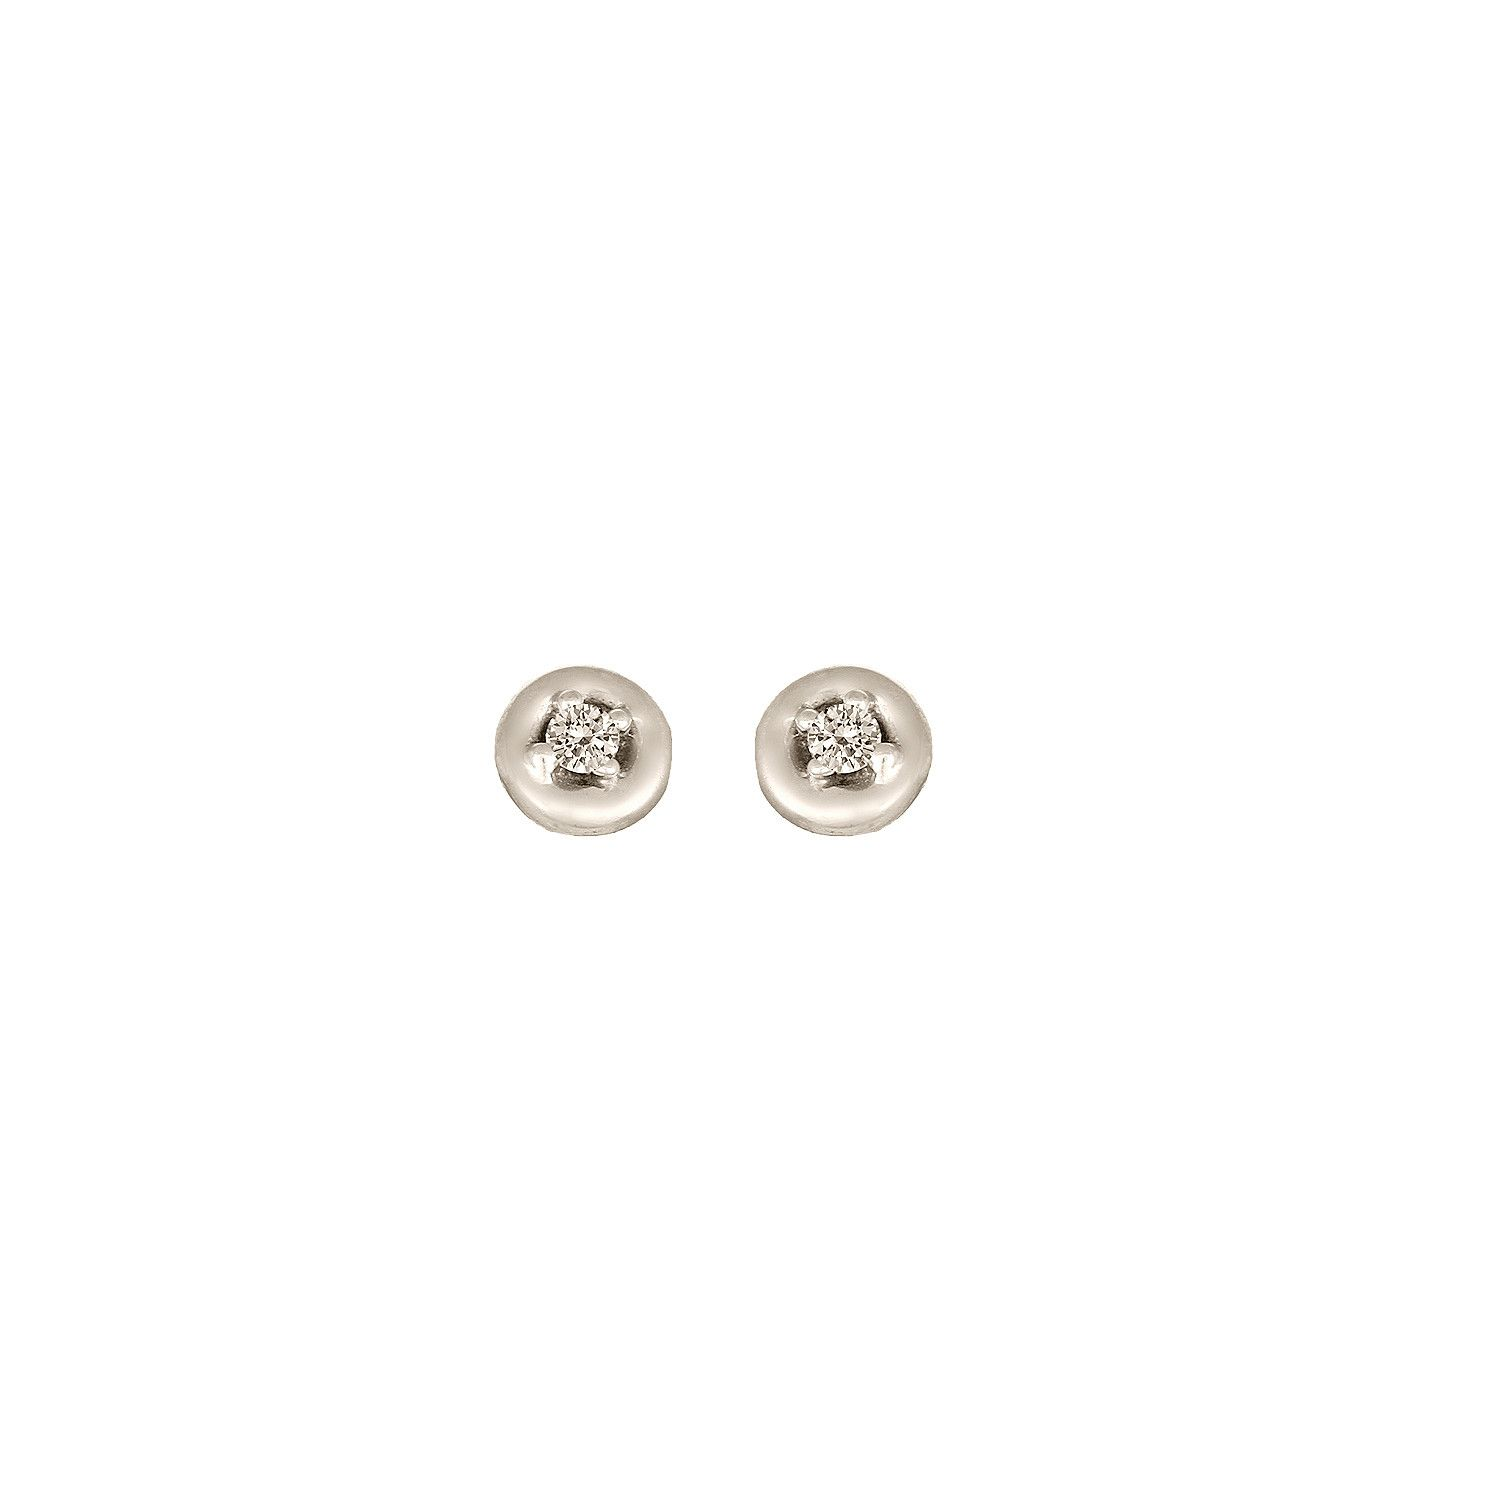 Tanishq Earrings India | Jewelry | Pinterest | Diamond stud ...